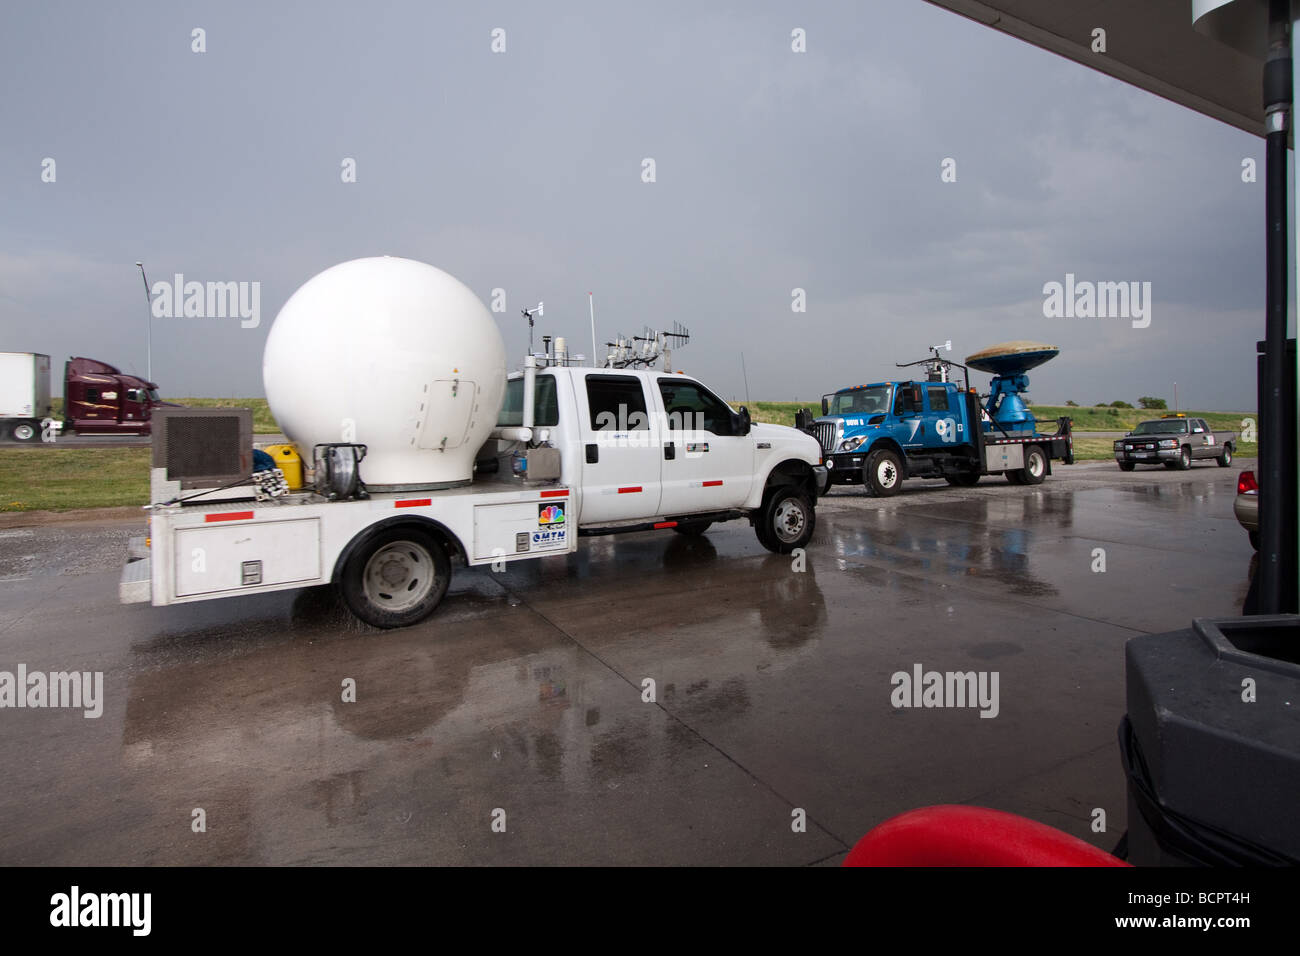 mobile doppler radar research vehicles parked in a gas station stock photo royalty free image. Black Bedroom Furniture Sets. Home Design Ideas